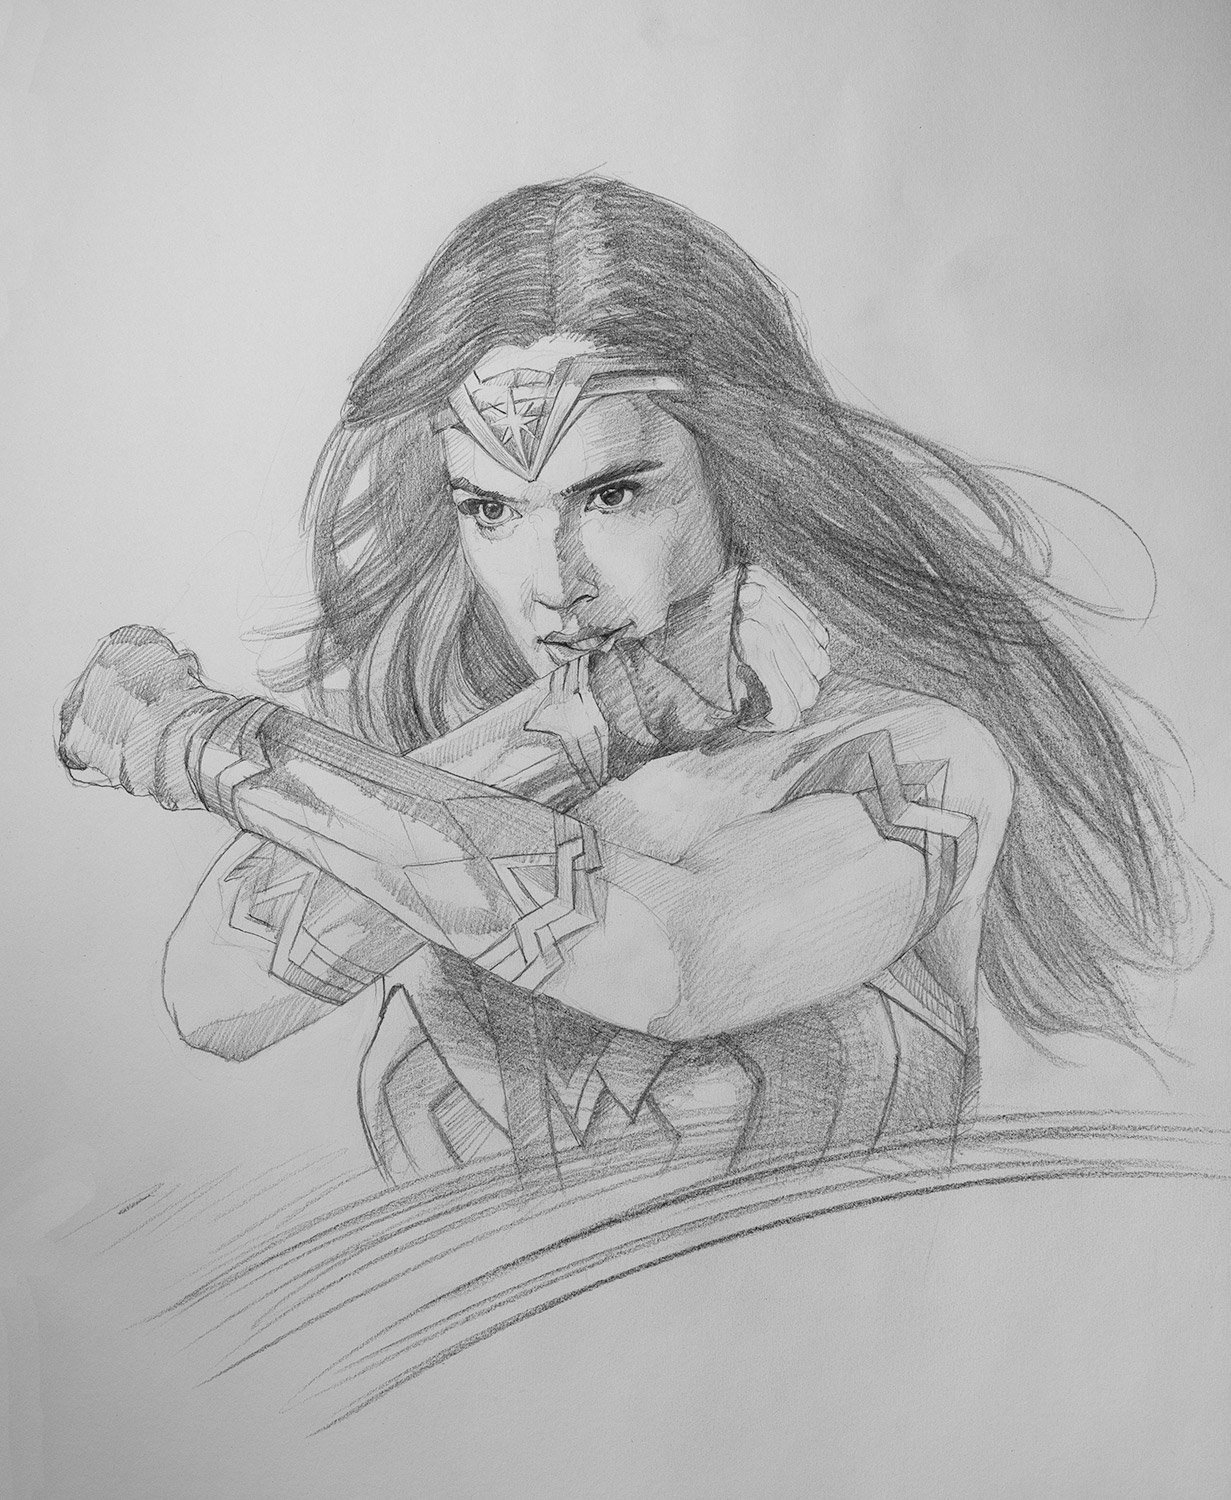 Wonder Woman by Chris Beaven